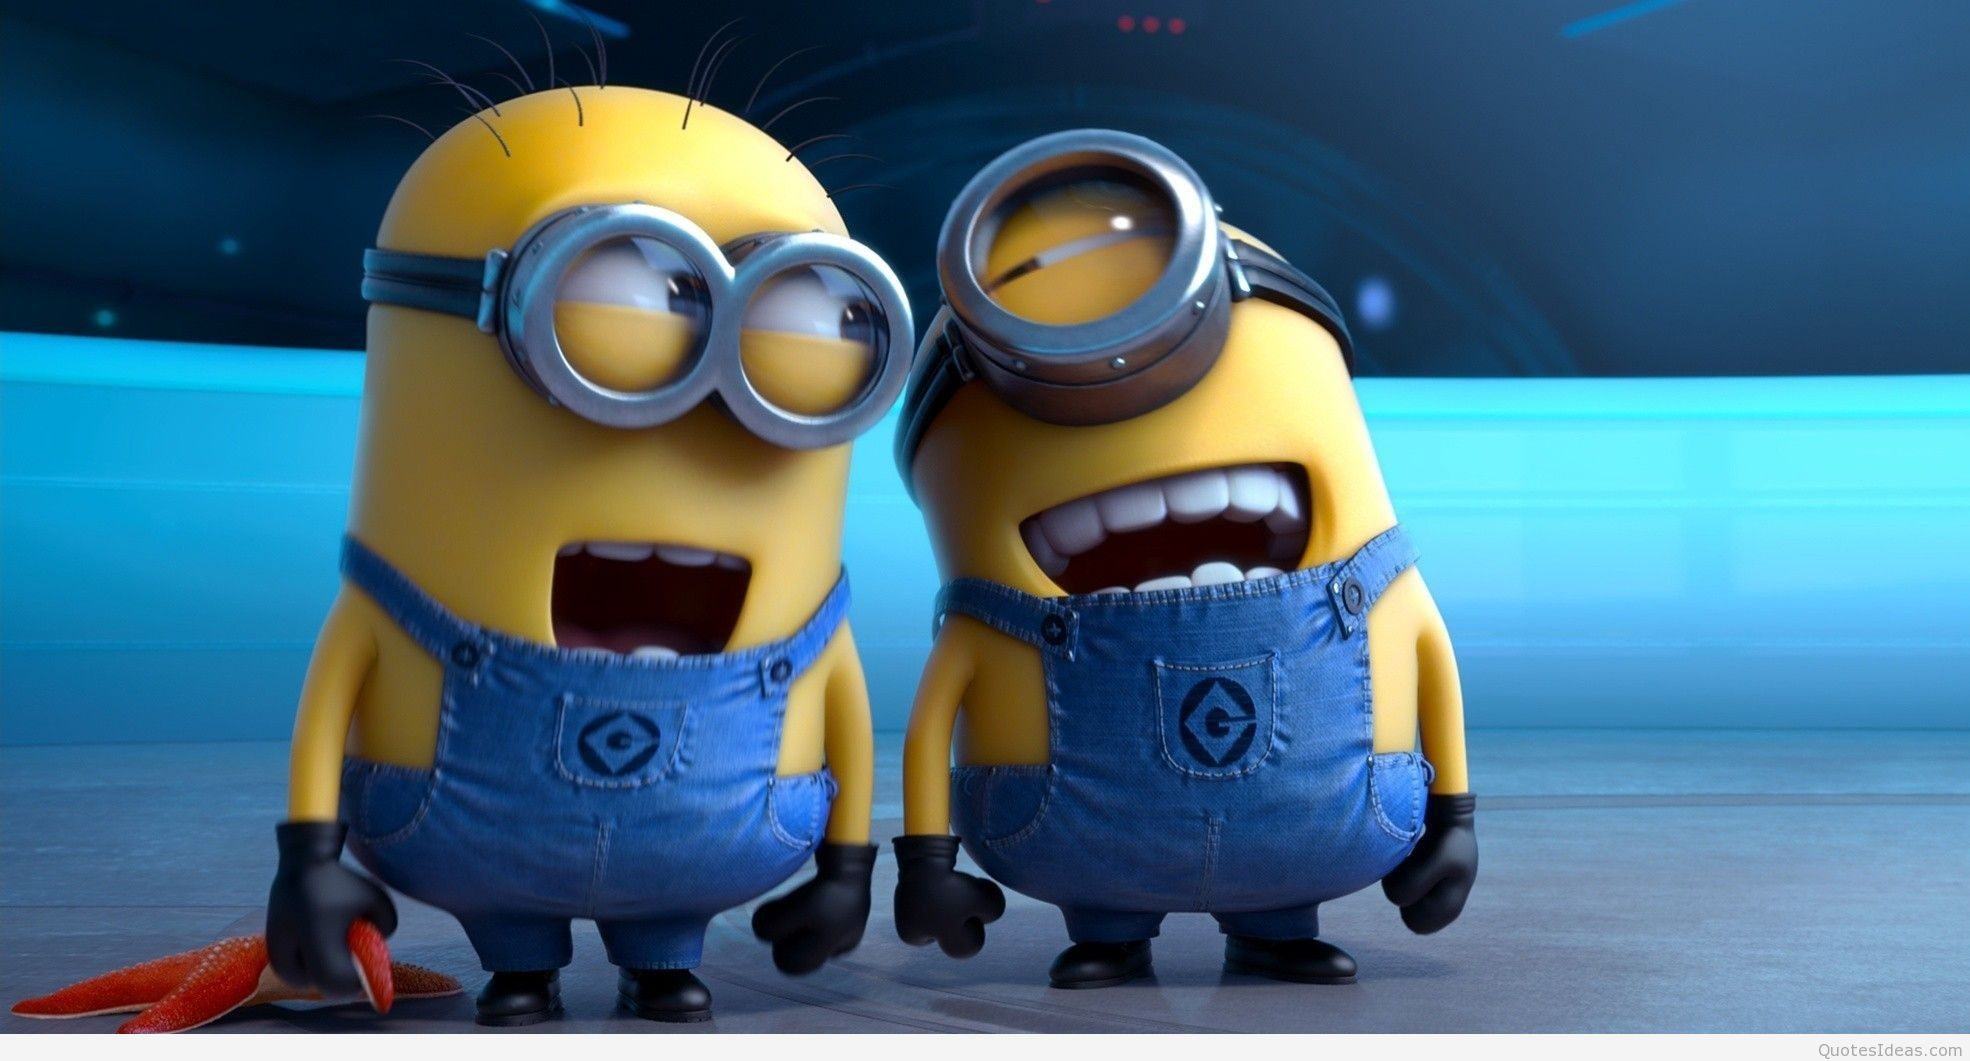 Minions backgrounds quotes and images 1970x1061